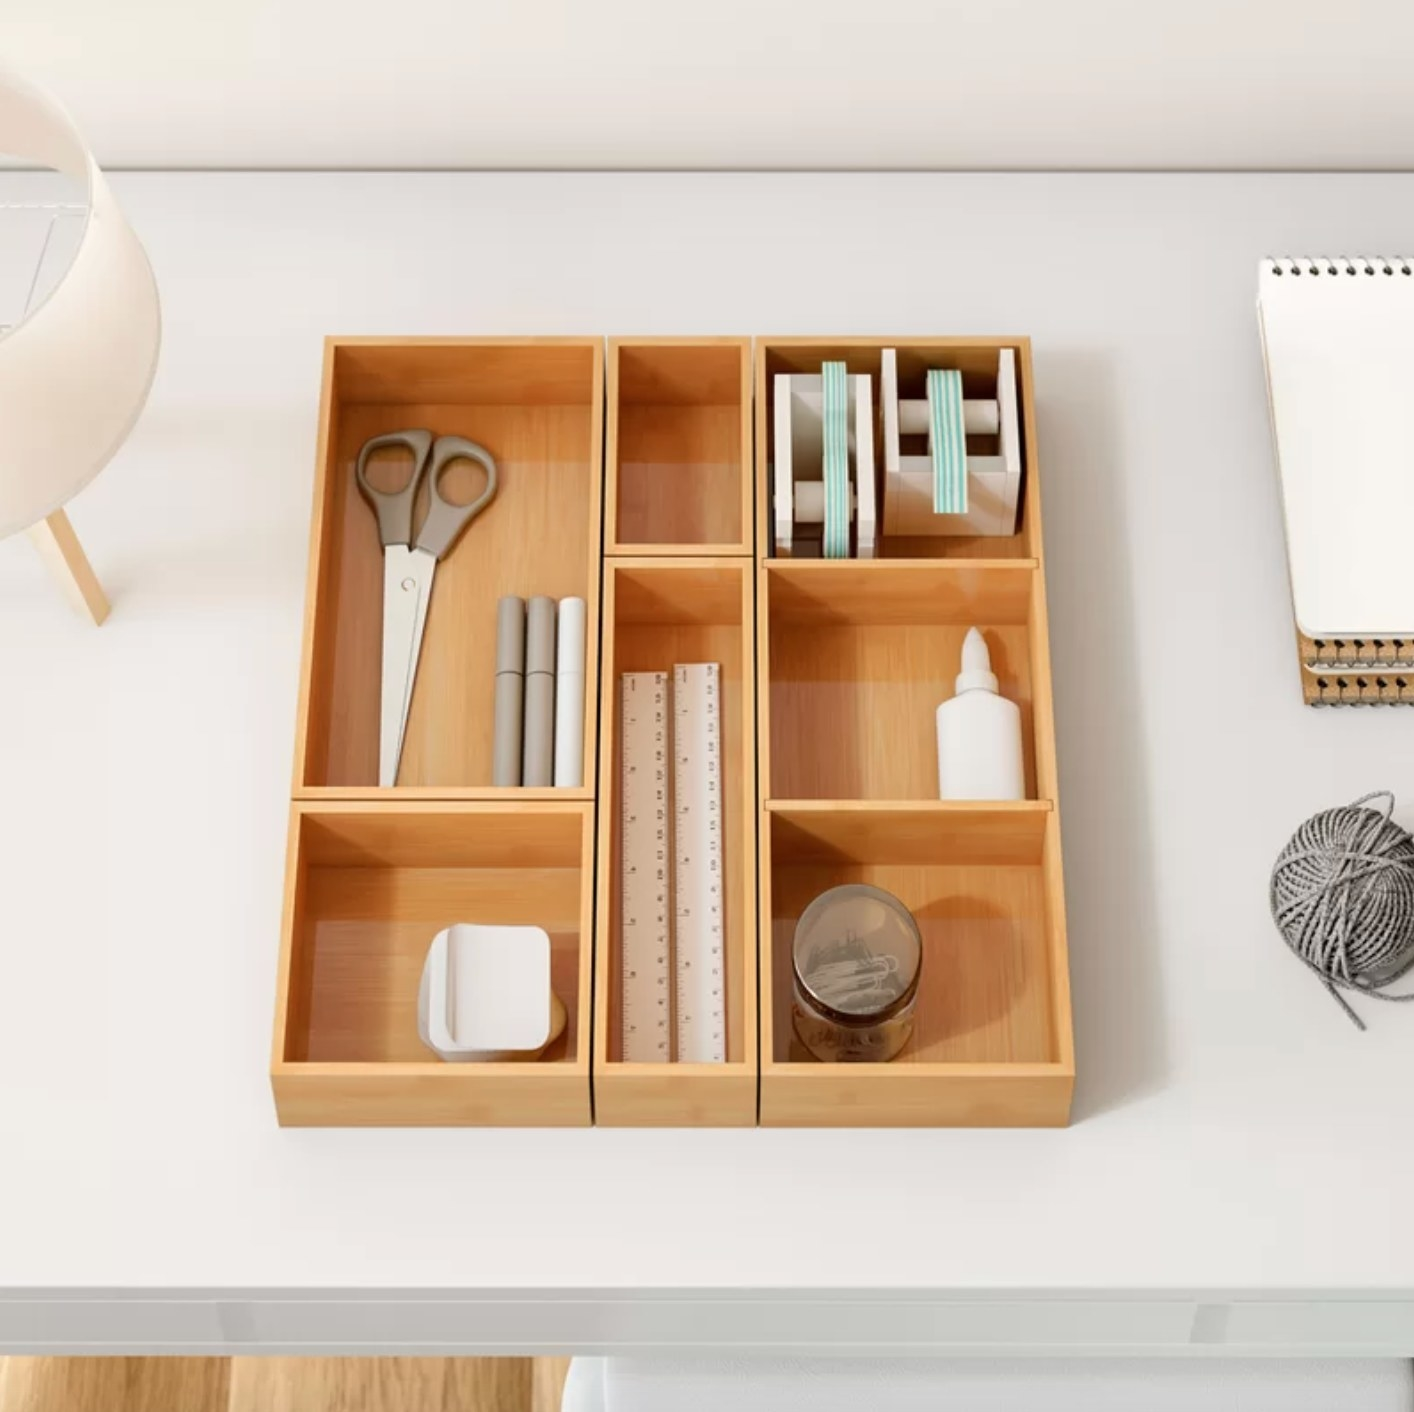 The five-piece drawer organizer in bamboo